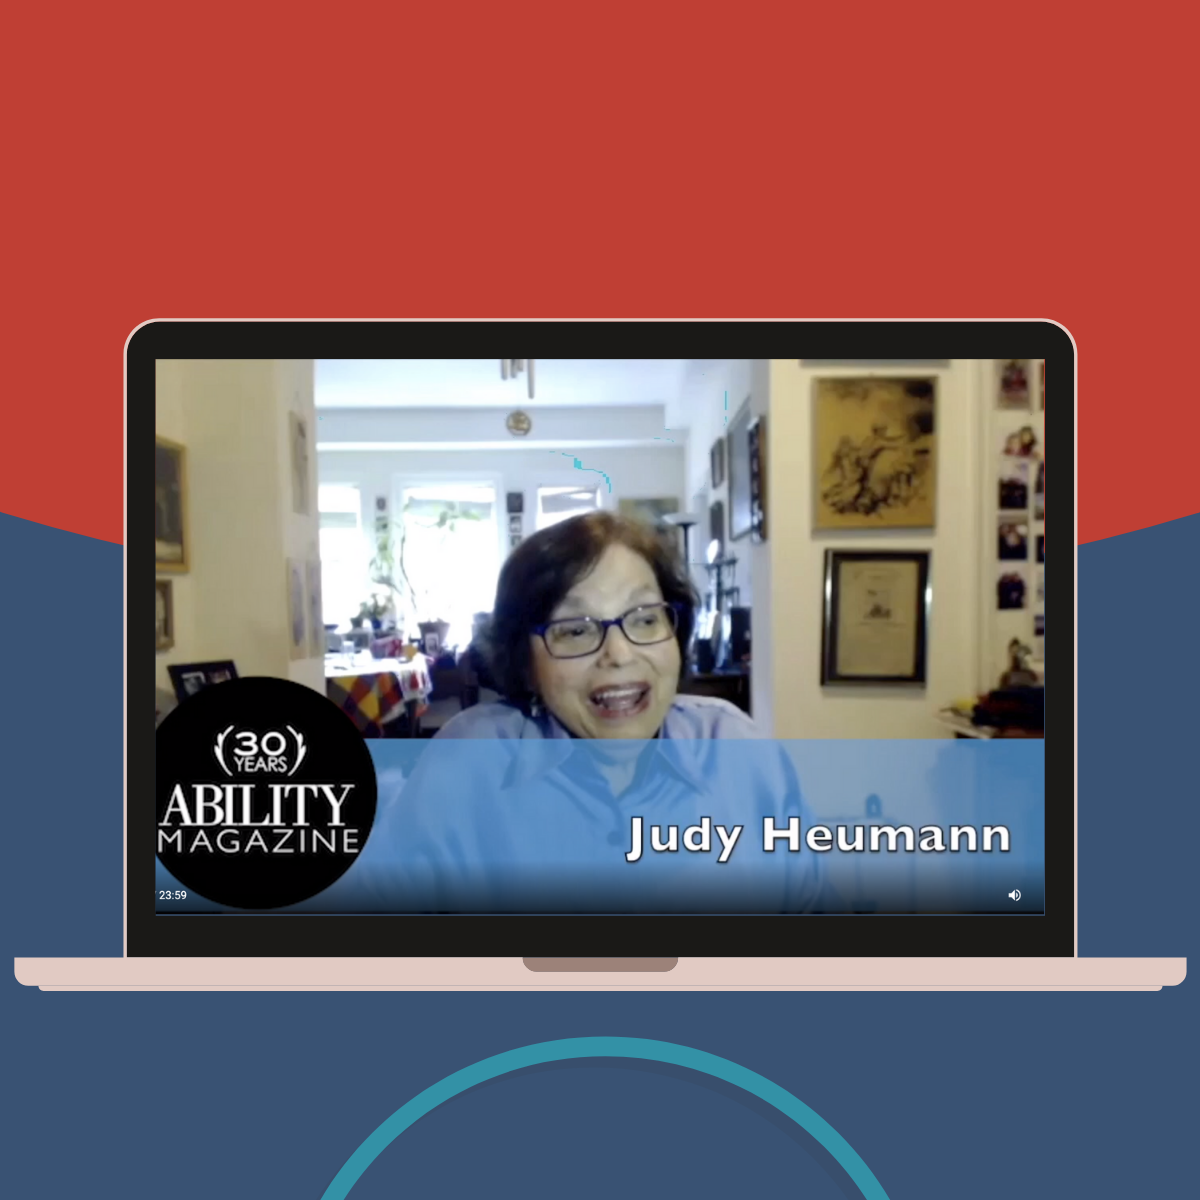 Image of laptop displaying video interview of Judy Heumann. Logo for ABILITY Magazine ADA 30 in bottom left corner.